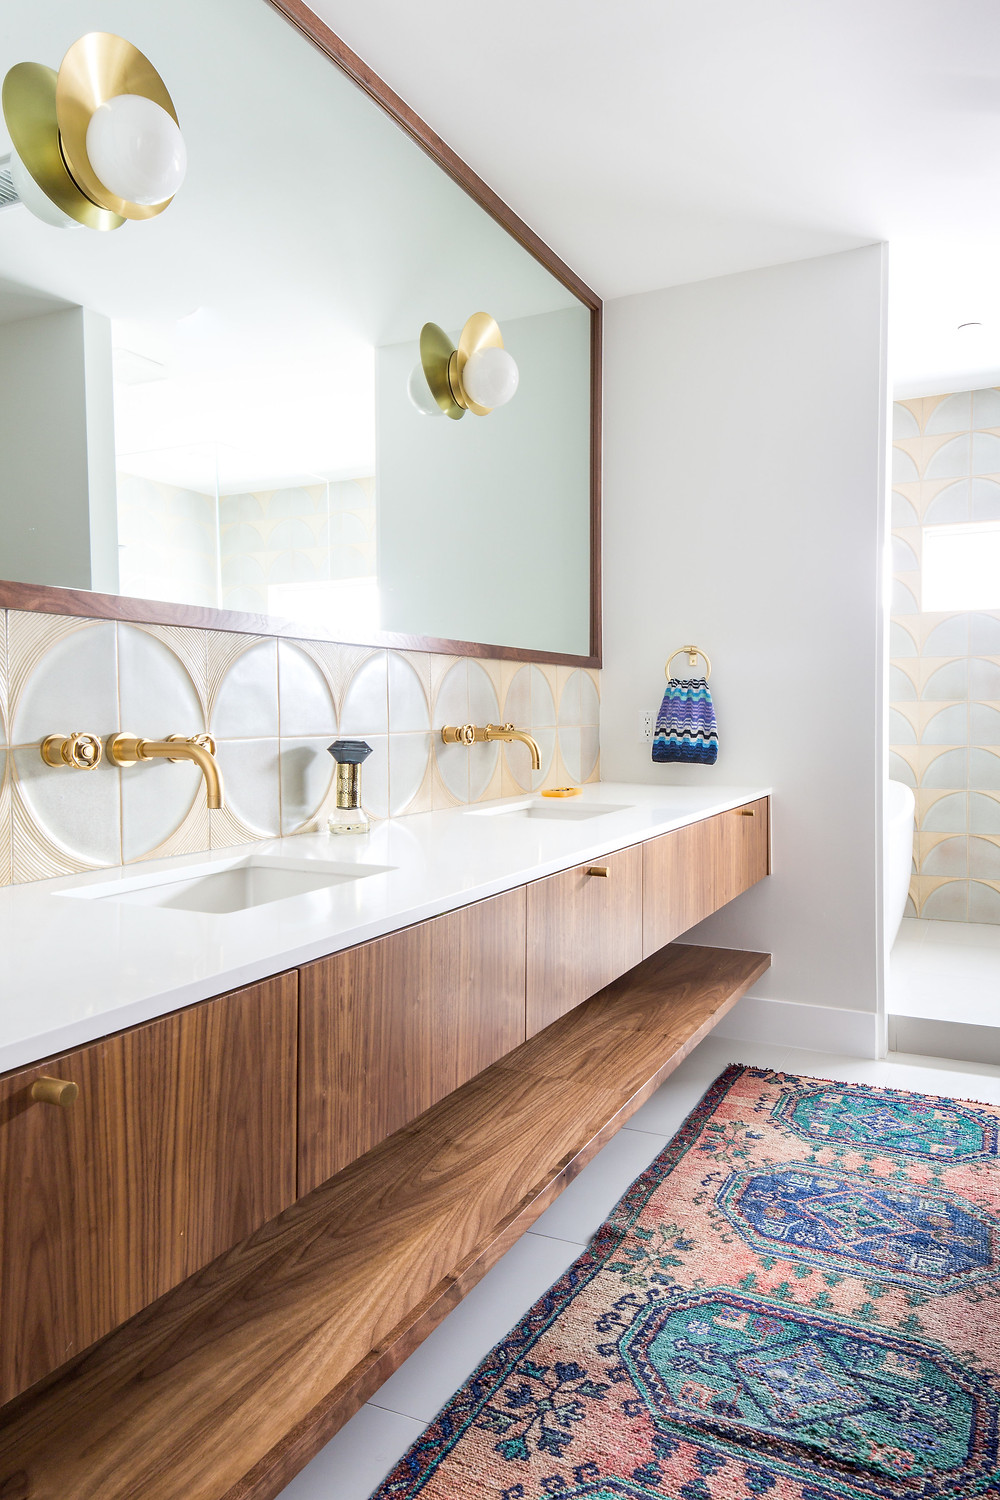 Walnut floating vanity cabinet in a modern bathroom by Veneer Designs